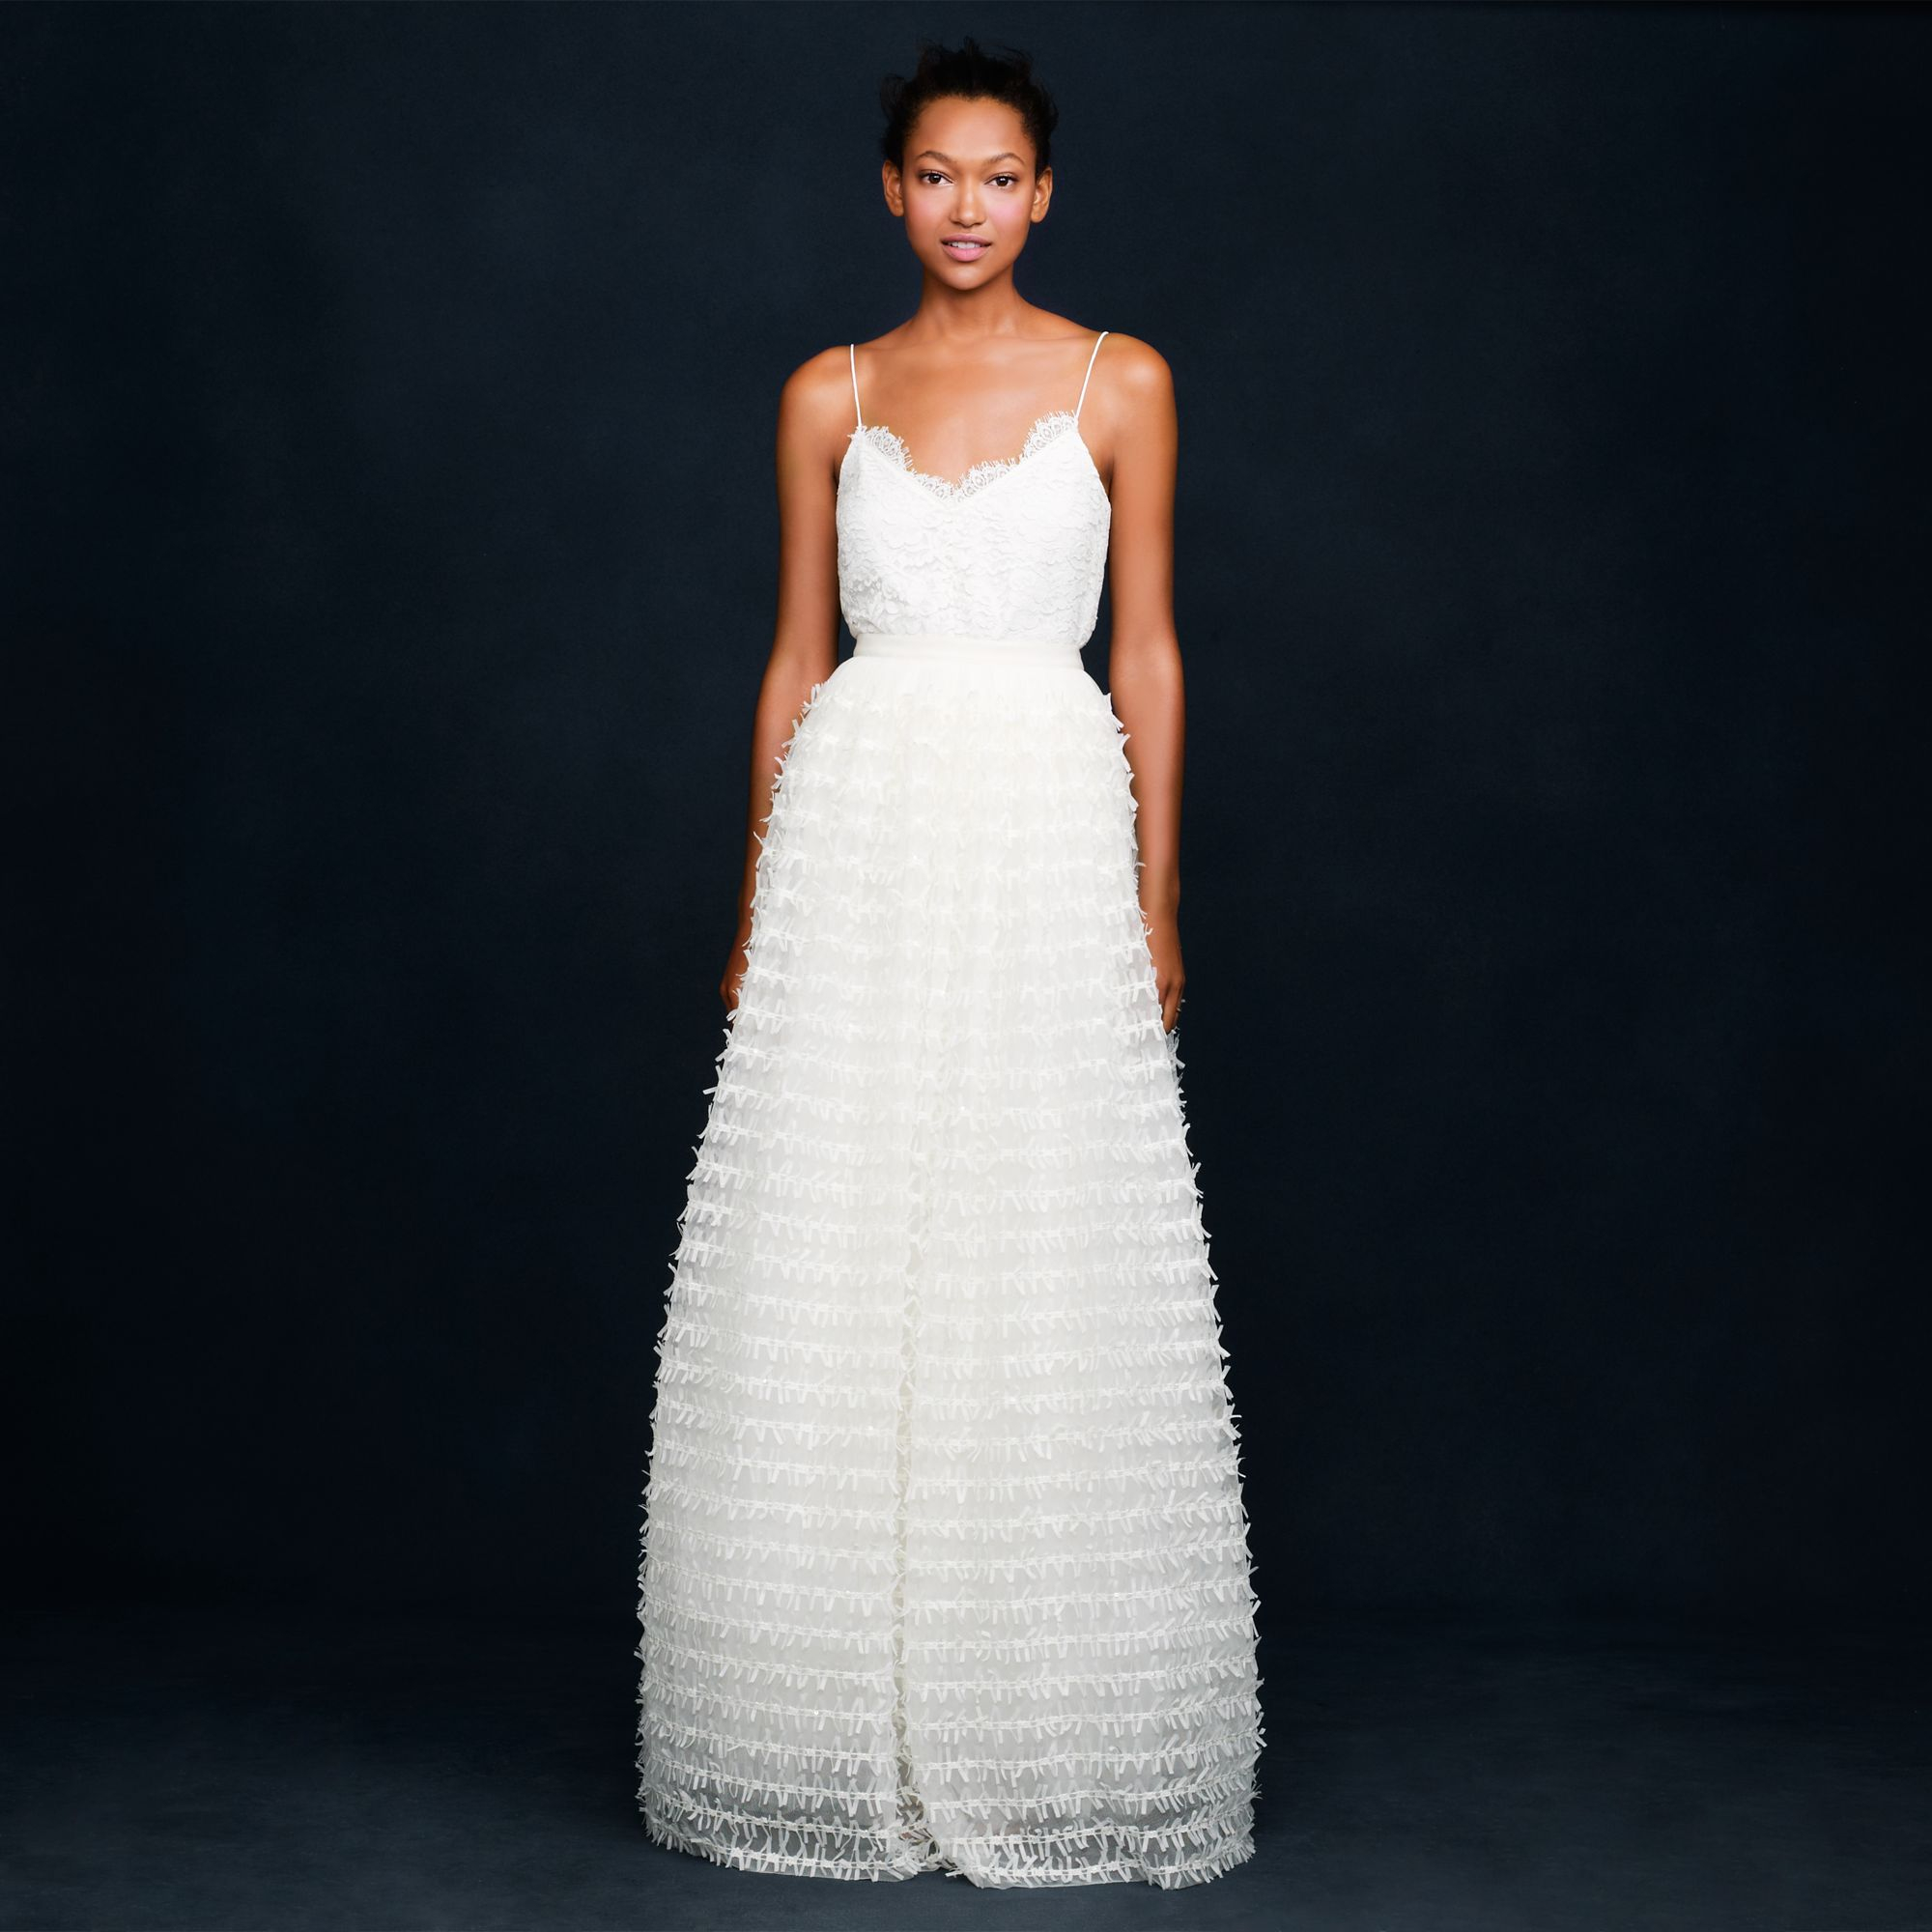 Lyst - J.Crew Collection Ribbon Tulle Ballgown Skirt in White